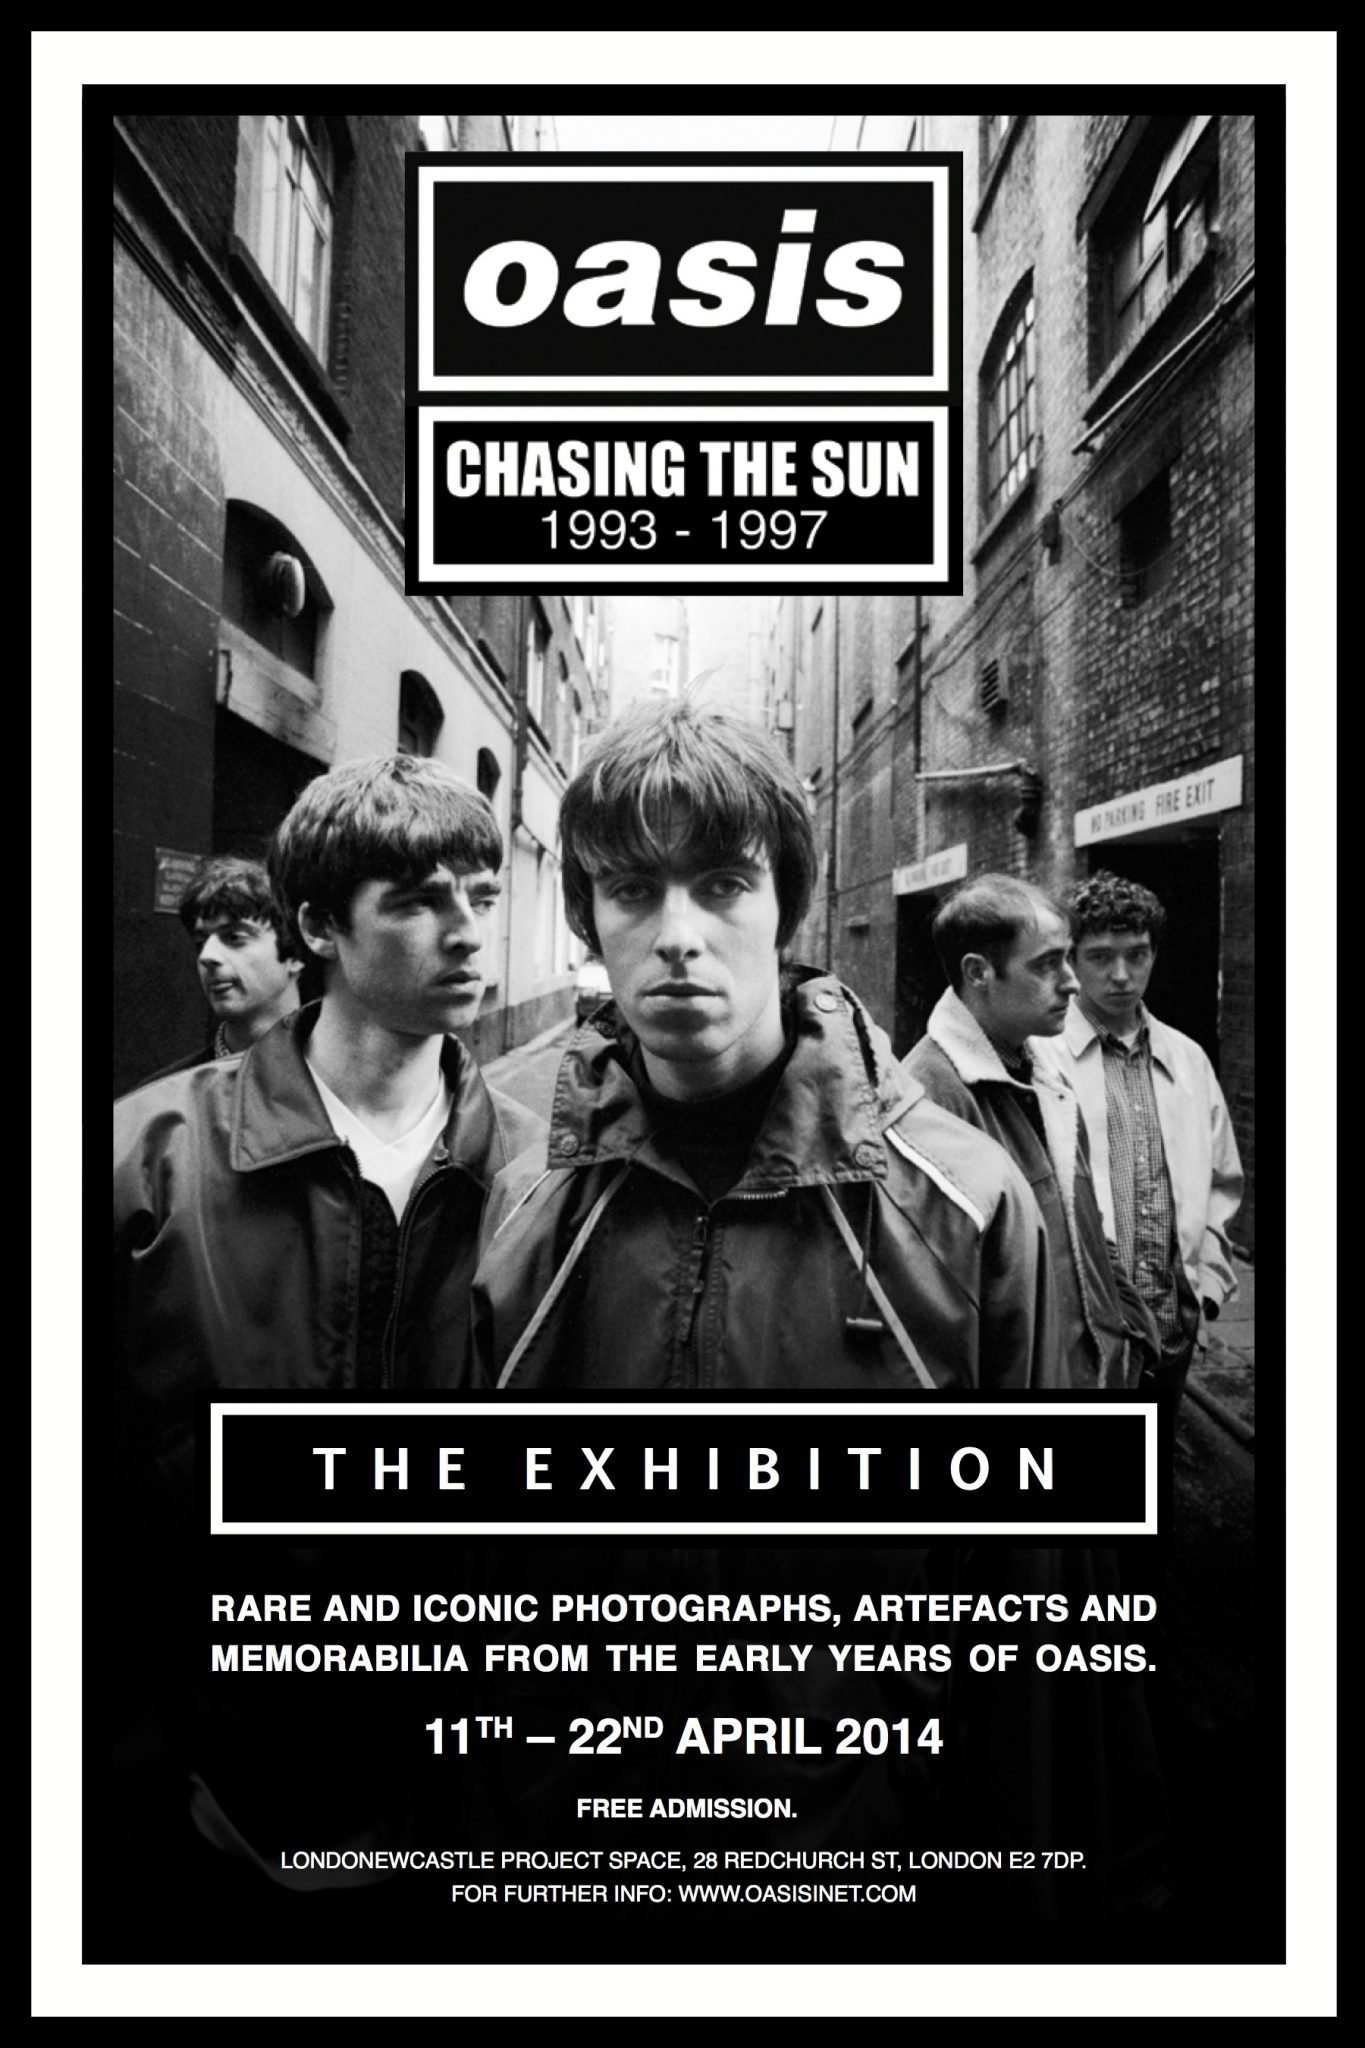 Oasis Exhibition Poster Chasing The Sun Persephone